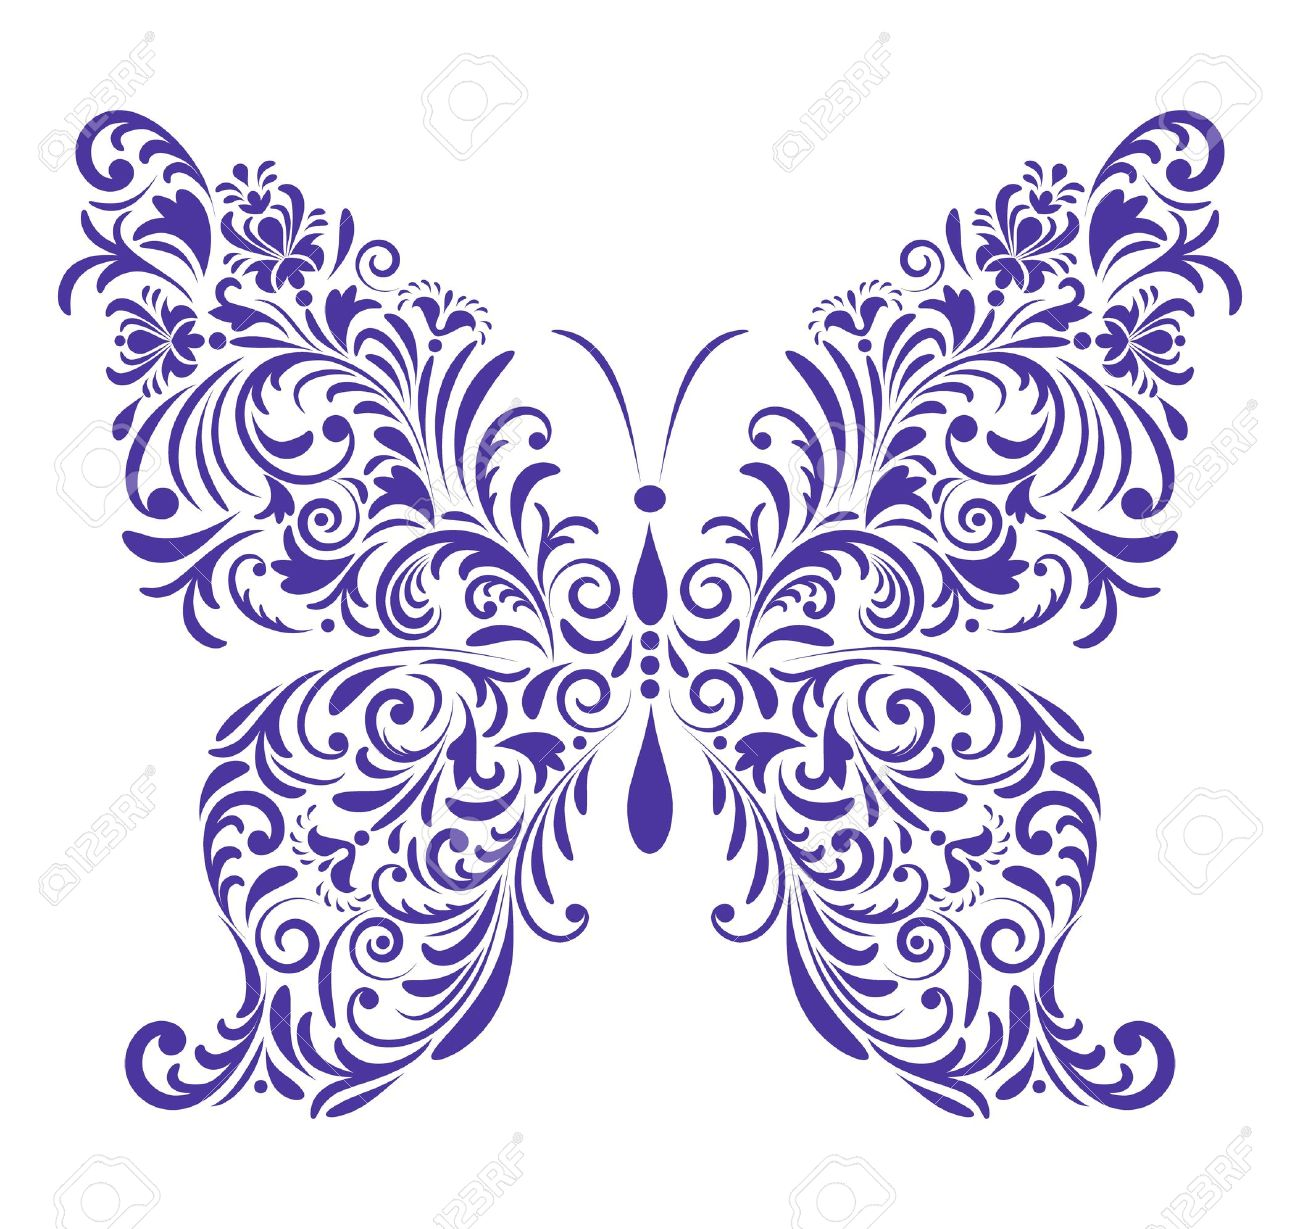 Vector illustration of abstract floral butterfly isolated on white background Stock Vector - 16240885